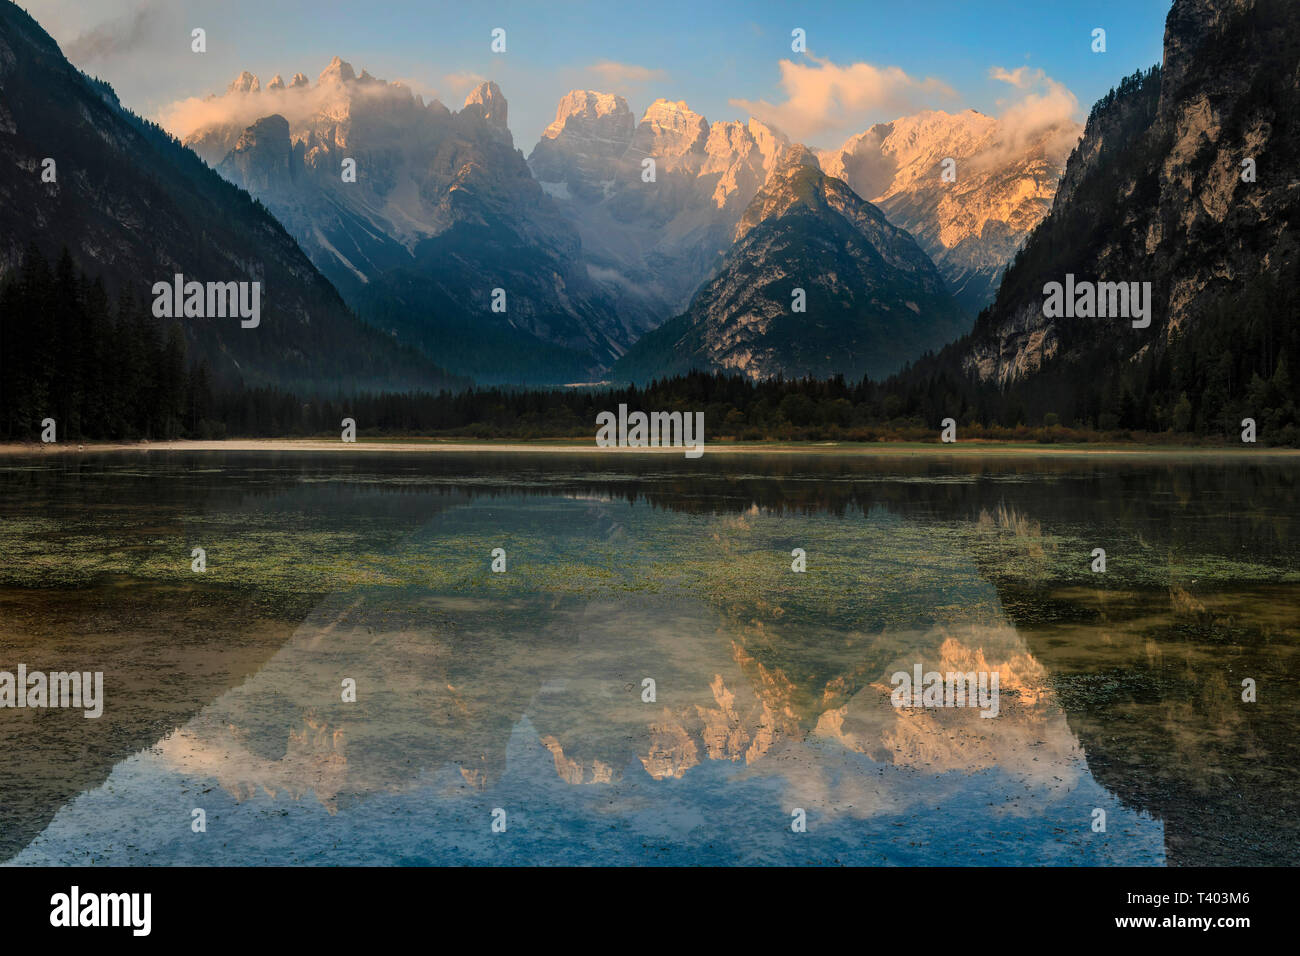 A gorgeous sunrise at Lake Landro. The perfectly still waters of the Lake Landro at sunrise made for a wonderful mirrored image of the Cristallo Group - Stock Image